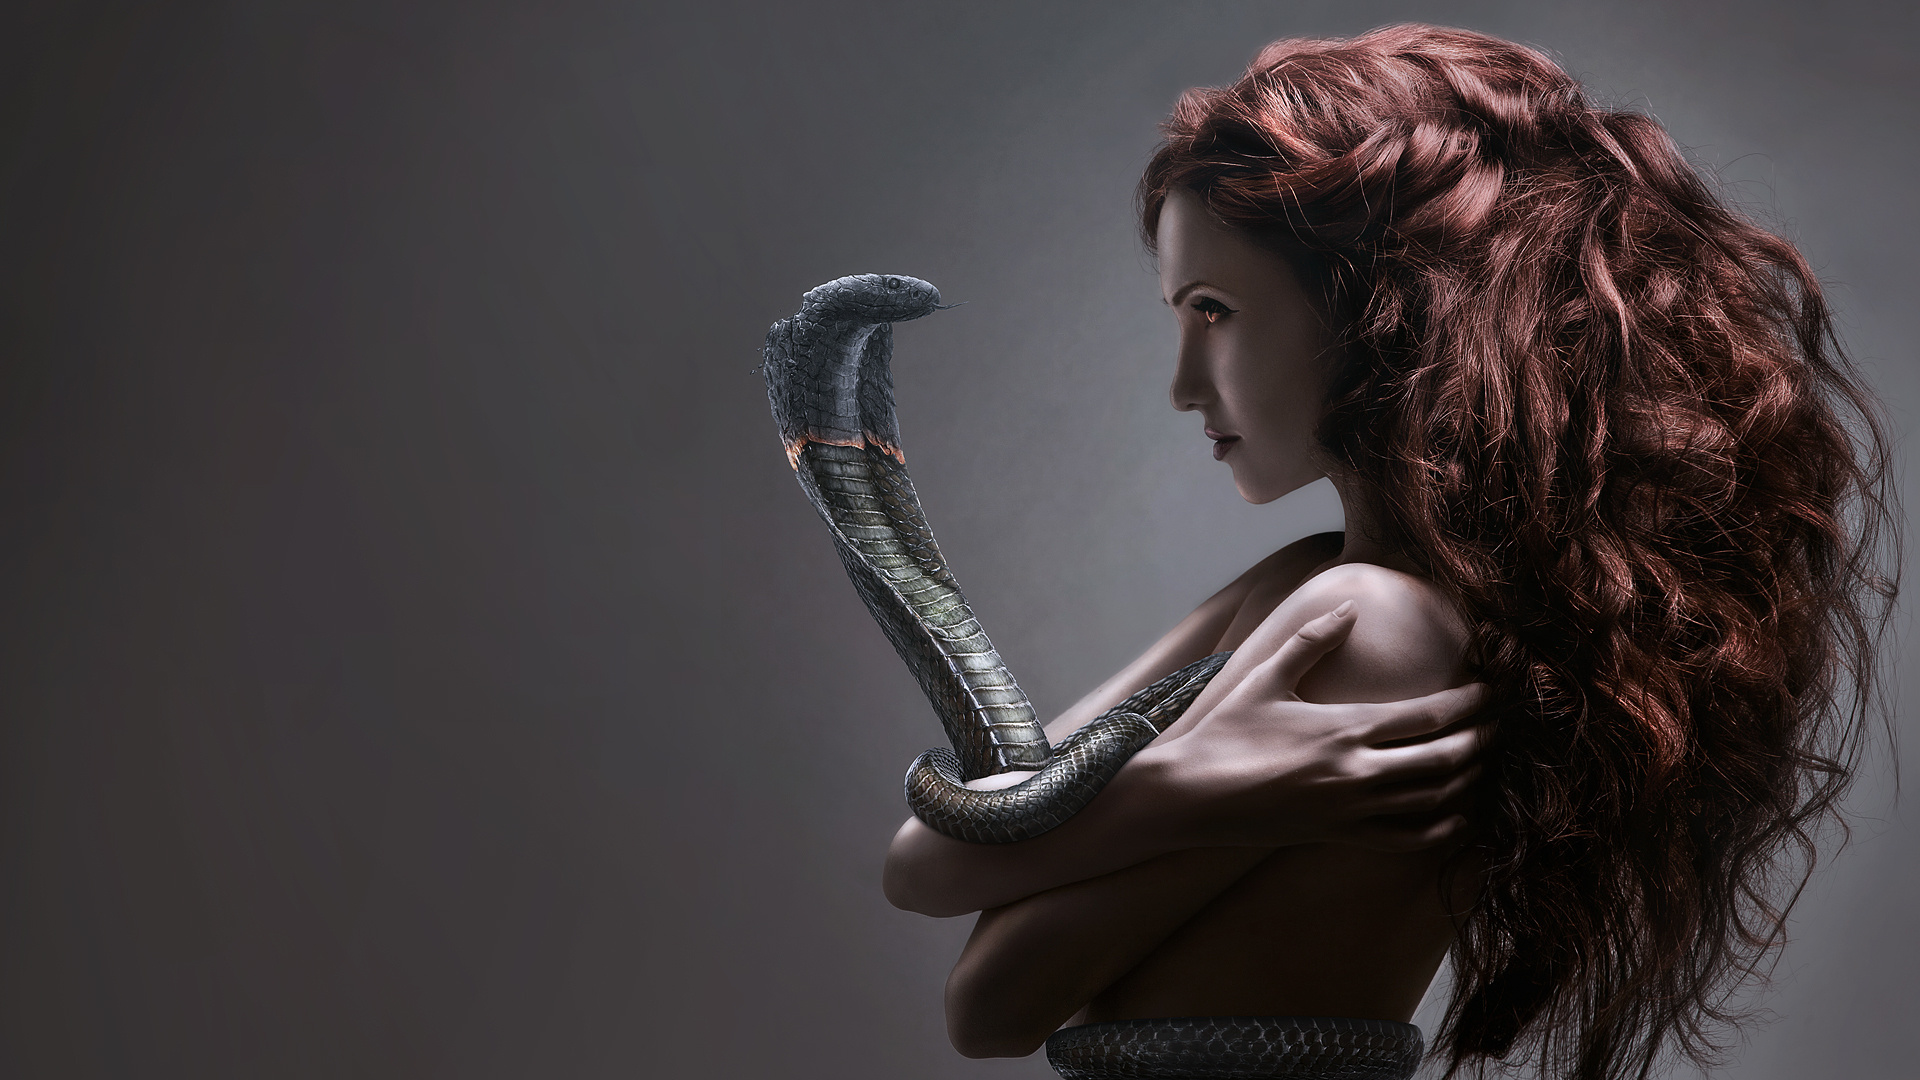 The Girl in the arms of Cobra